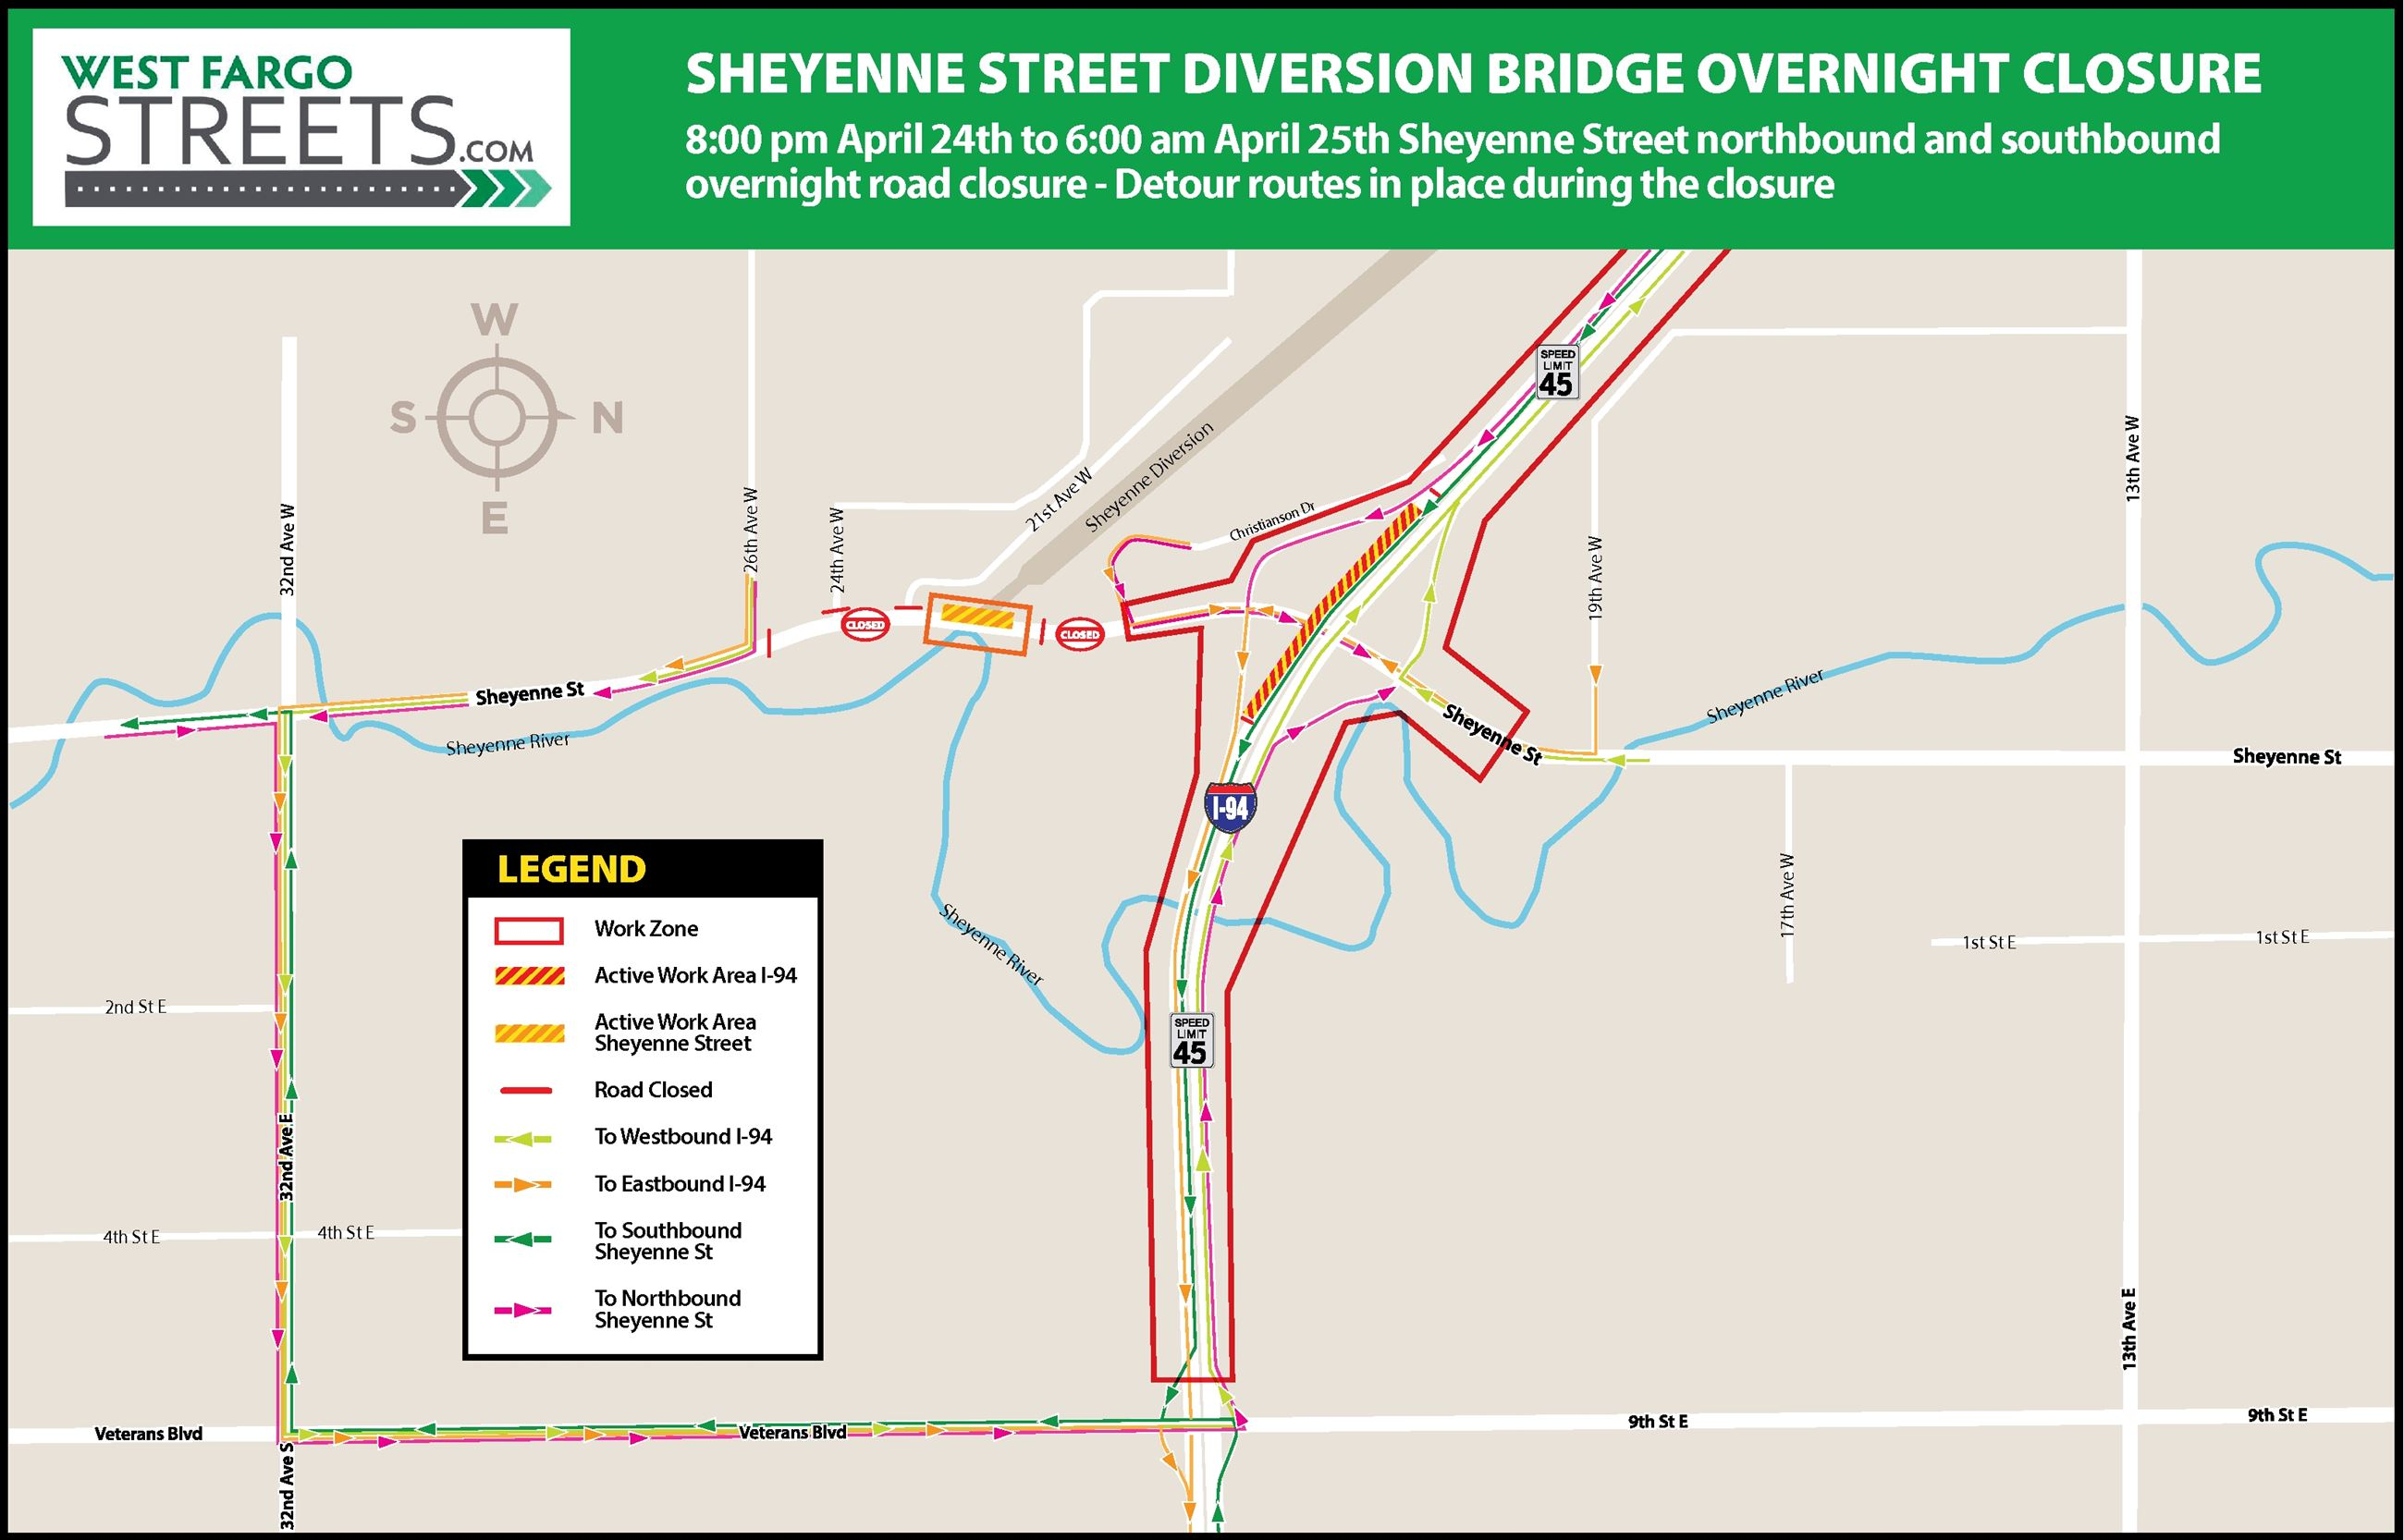 0_overnight_closure_diversion_bridge_Sheyenne_map_a5 Opens in new window